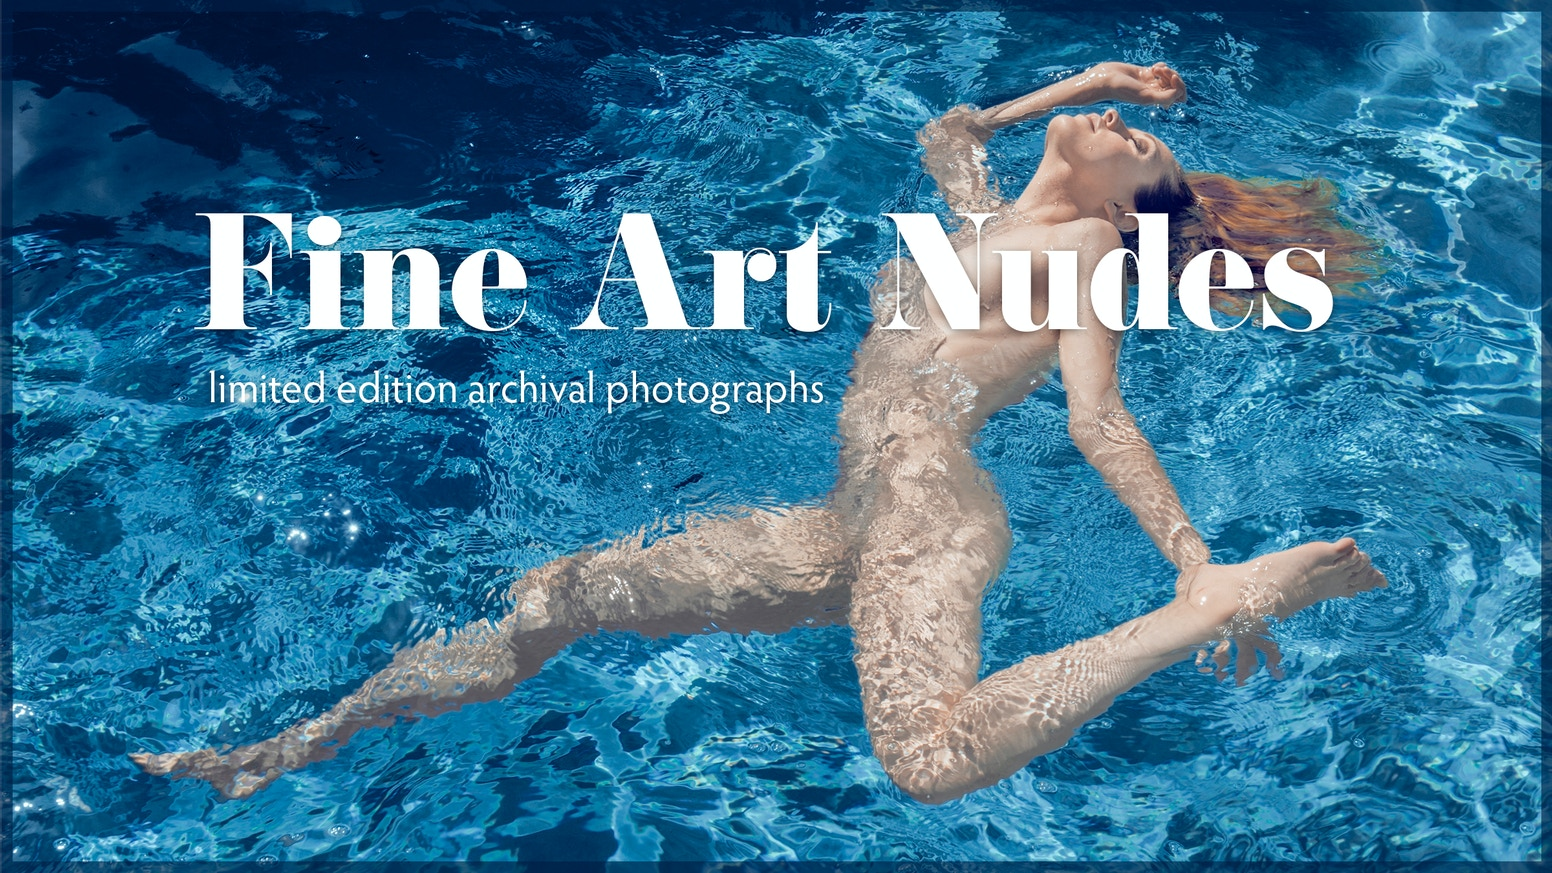 Limited edition archival photographs. Fine art nudes celebrating feminine beauty with an emphasis on aesthetics.